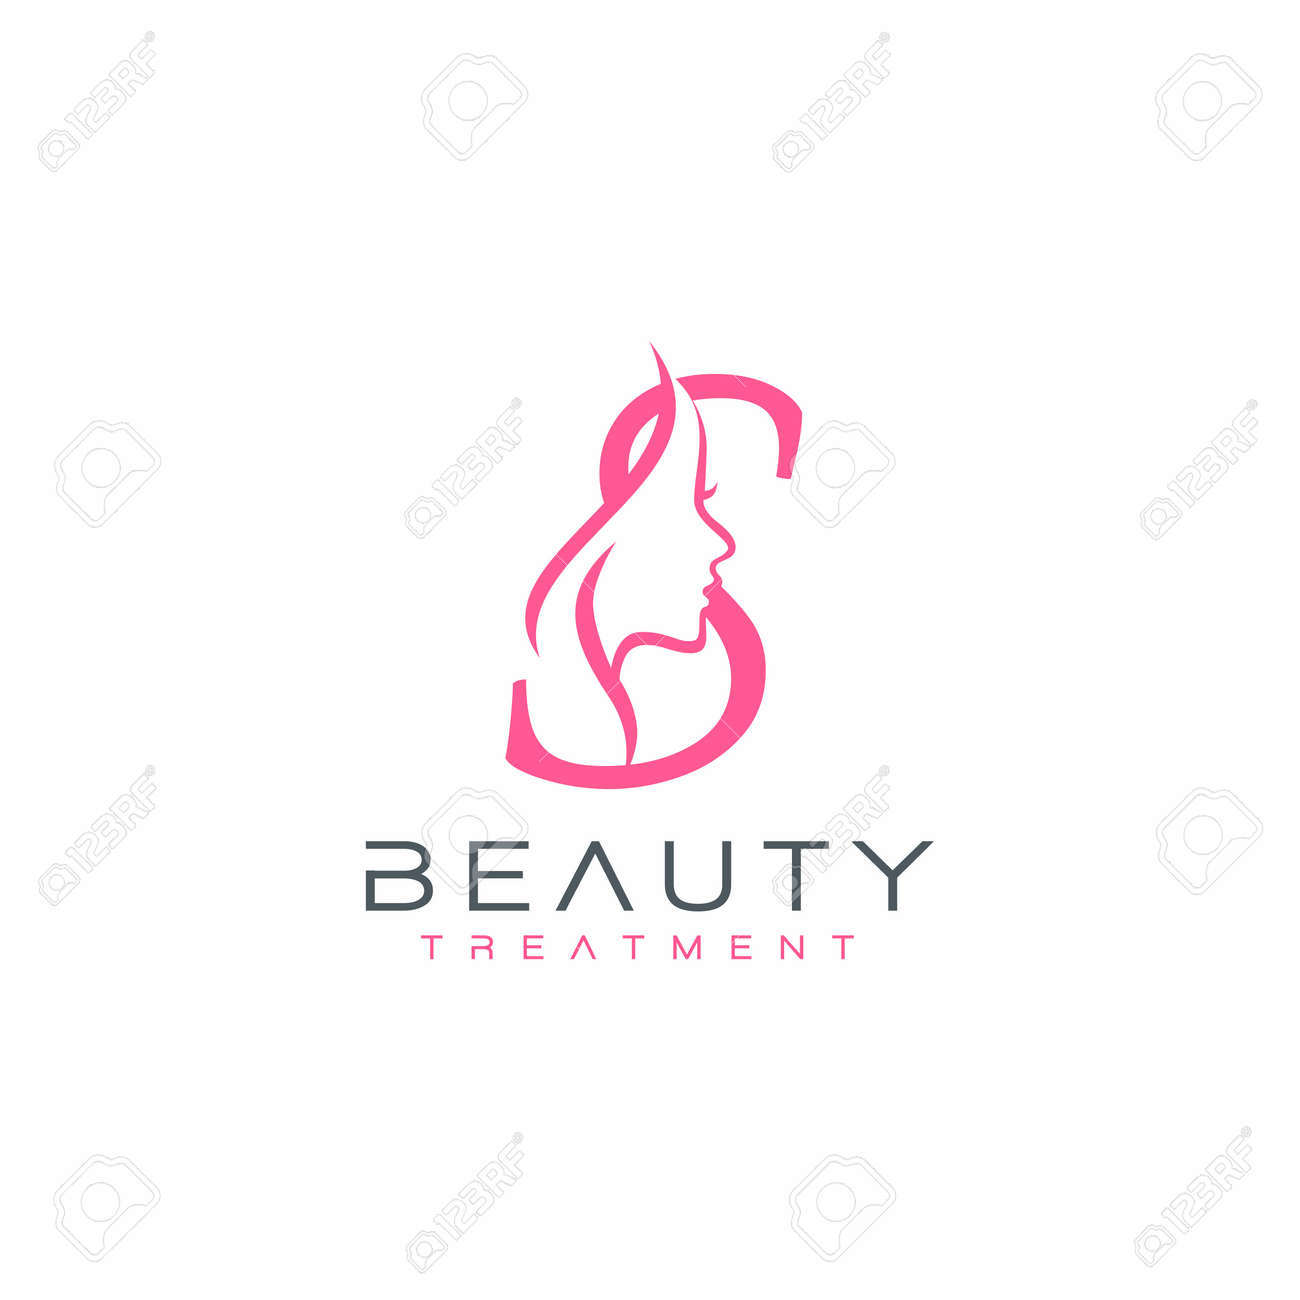 Letter S Beauty Face Logo Design Vector Icon Royalty Free Cliparts Vectors And Stock Illustration Image 142538917